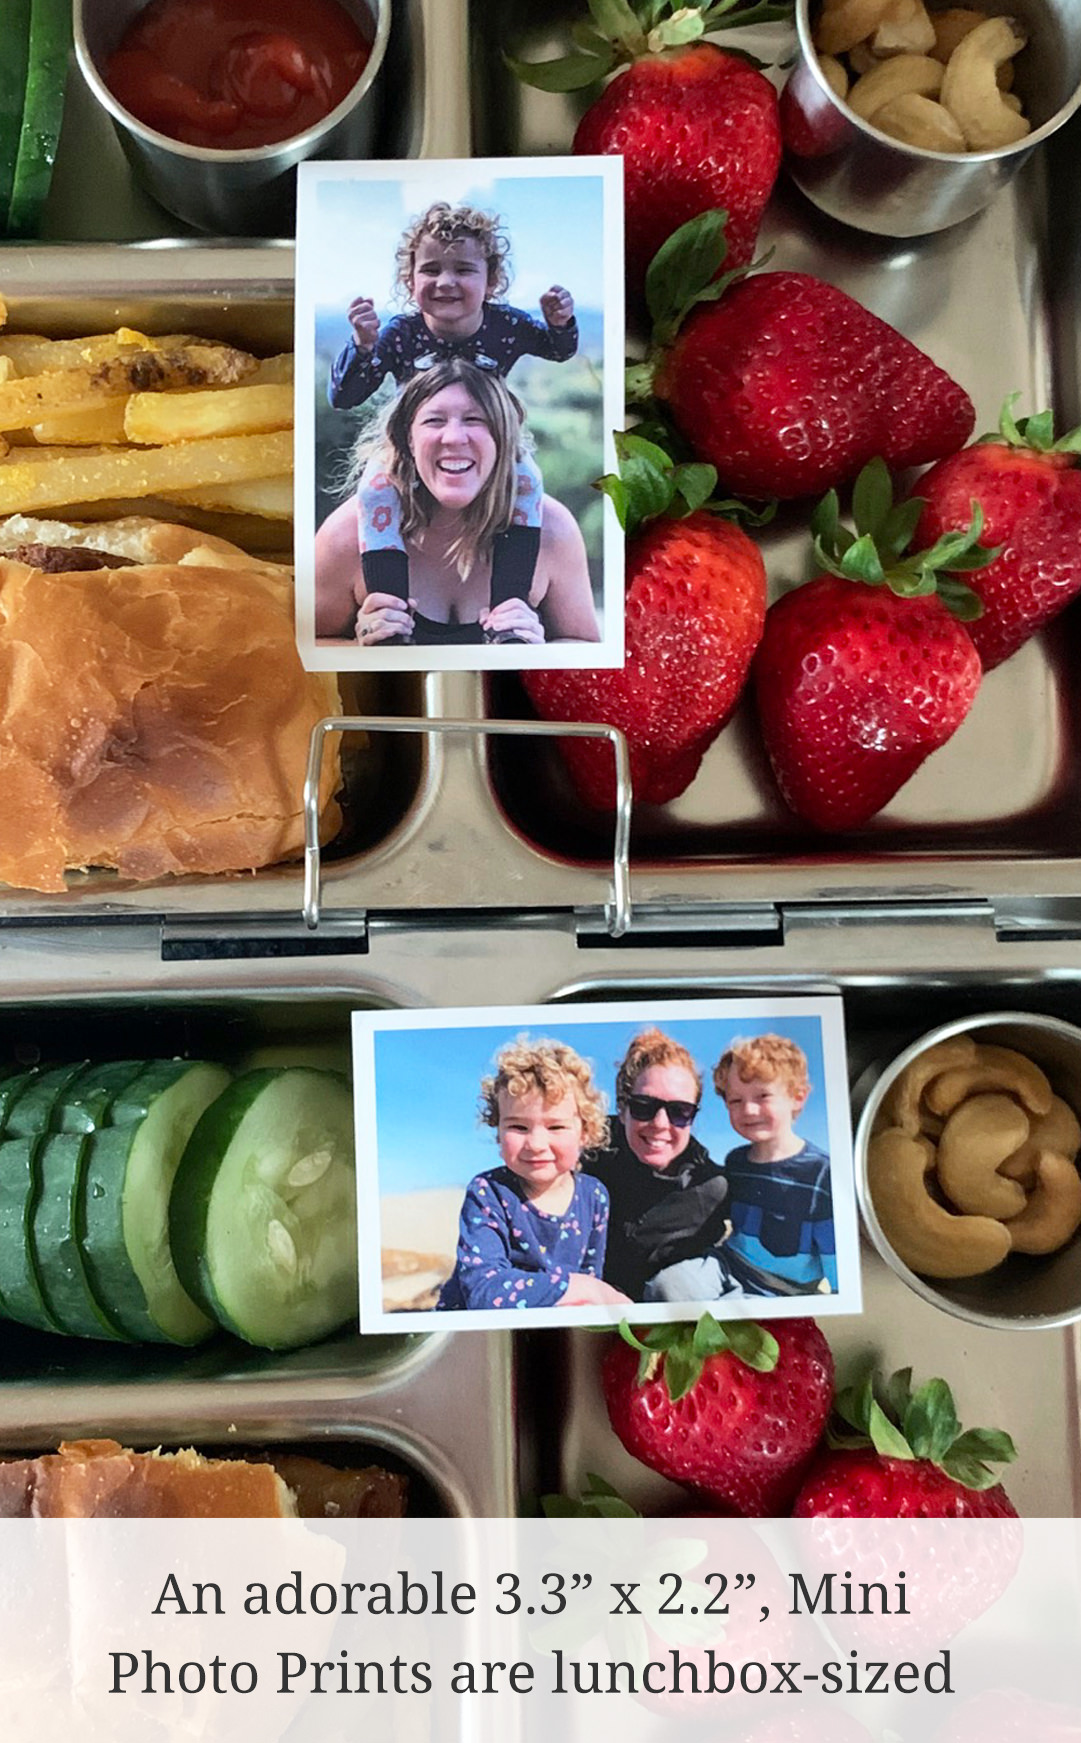 "An adorable 3.3"" x 2.2"", Mini Photo Prints are lunchbox-sized"